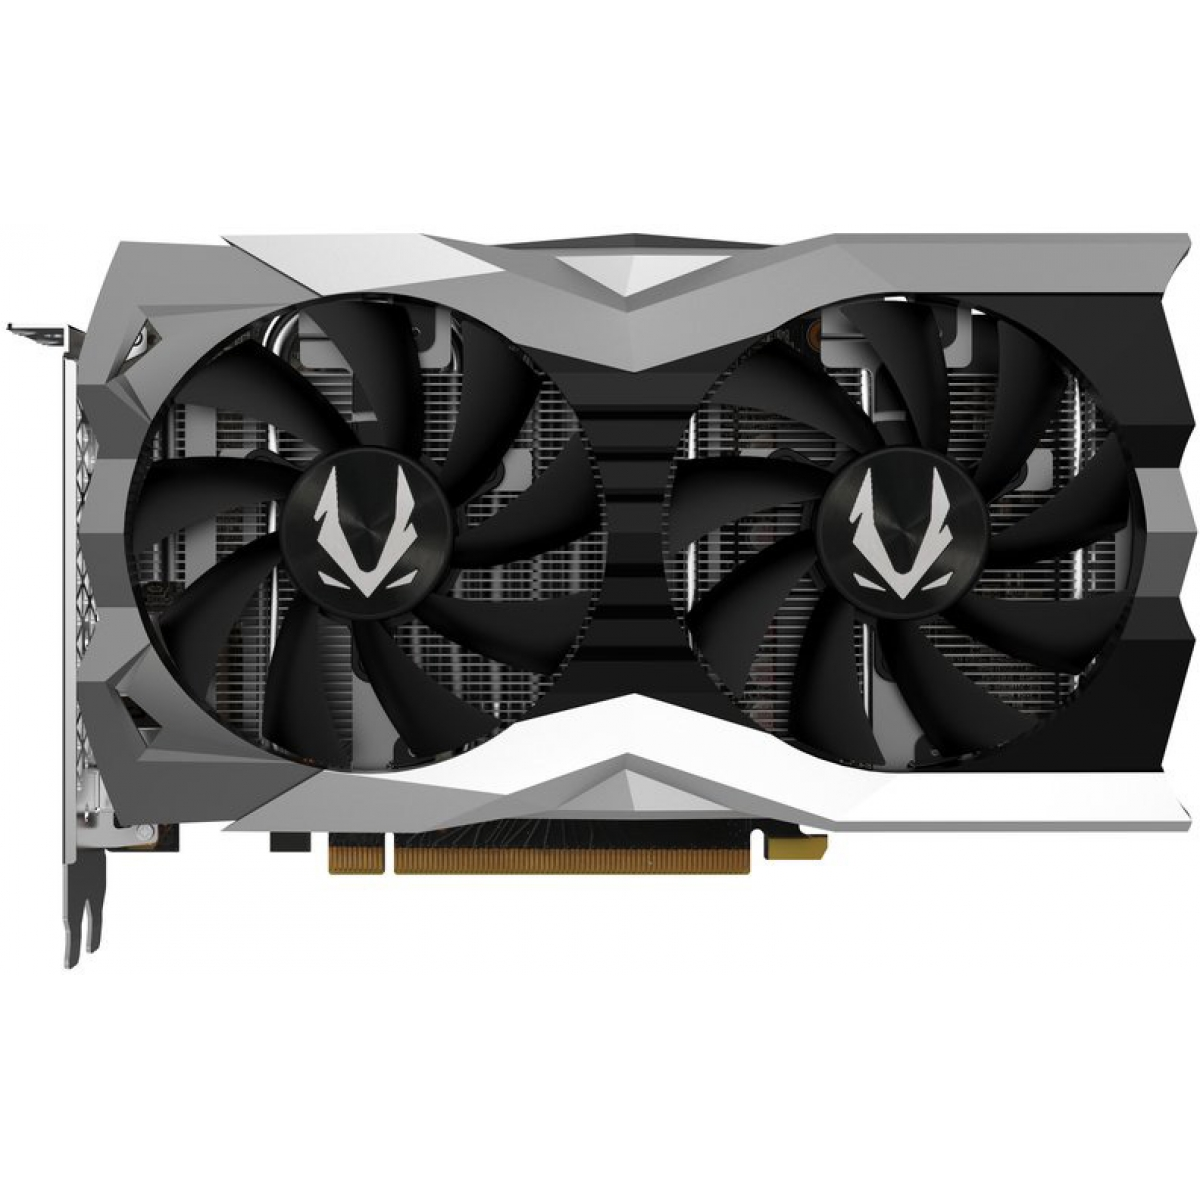 Placa de Vídeo Zotac GeForce RTX 2060 Gaming Twin Fan, 6GB GDDR6, 192Bit, ZT-T20600F-10M